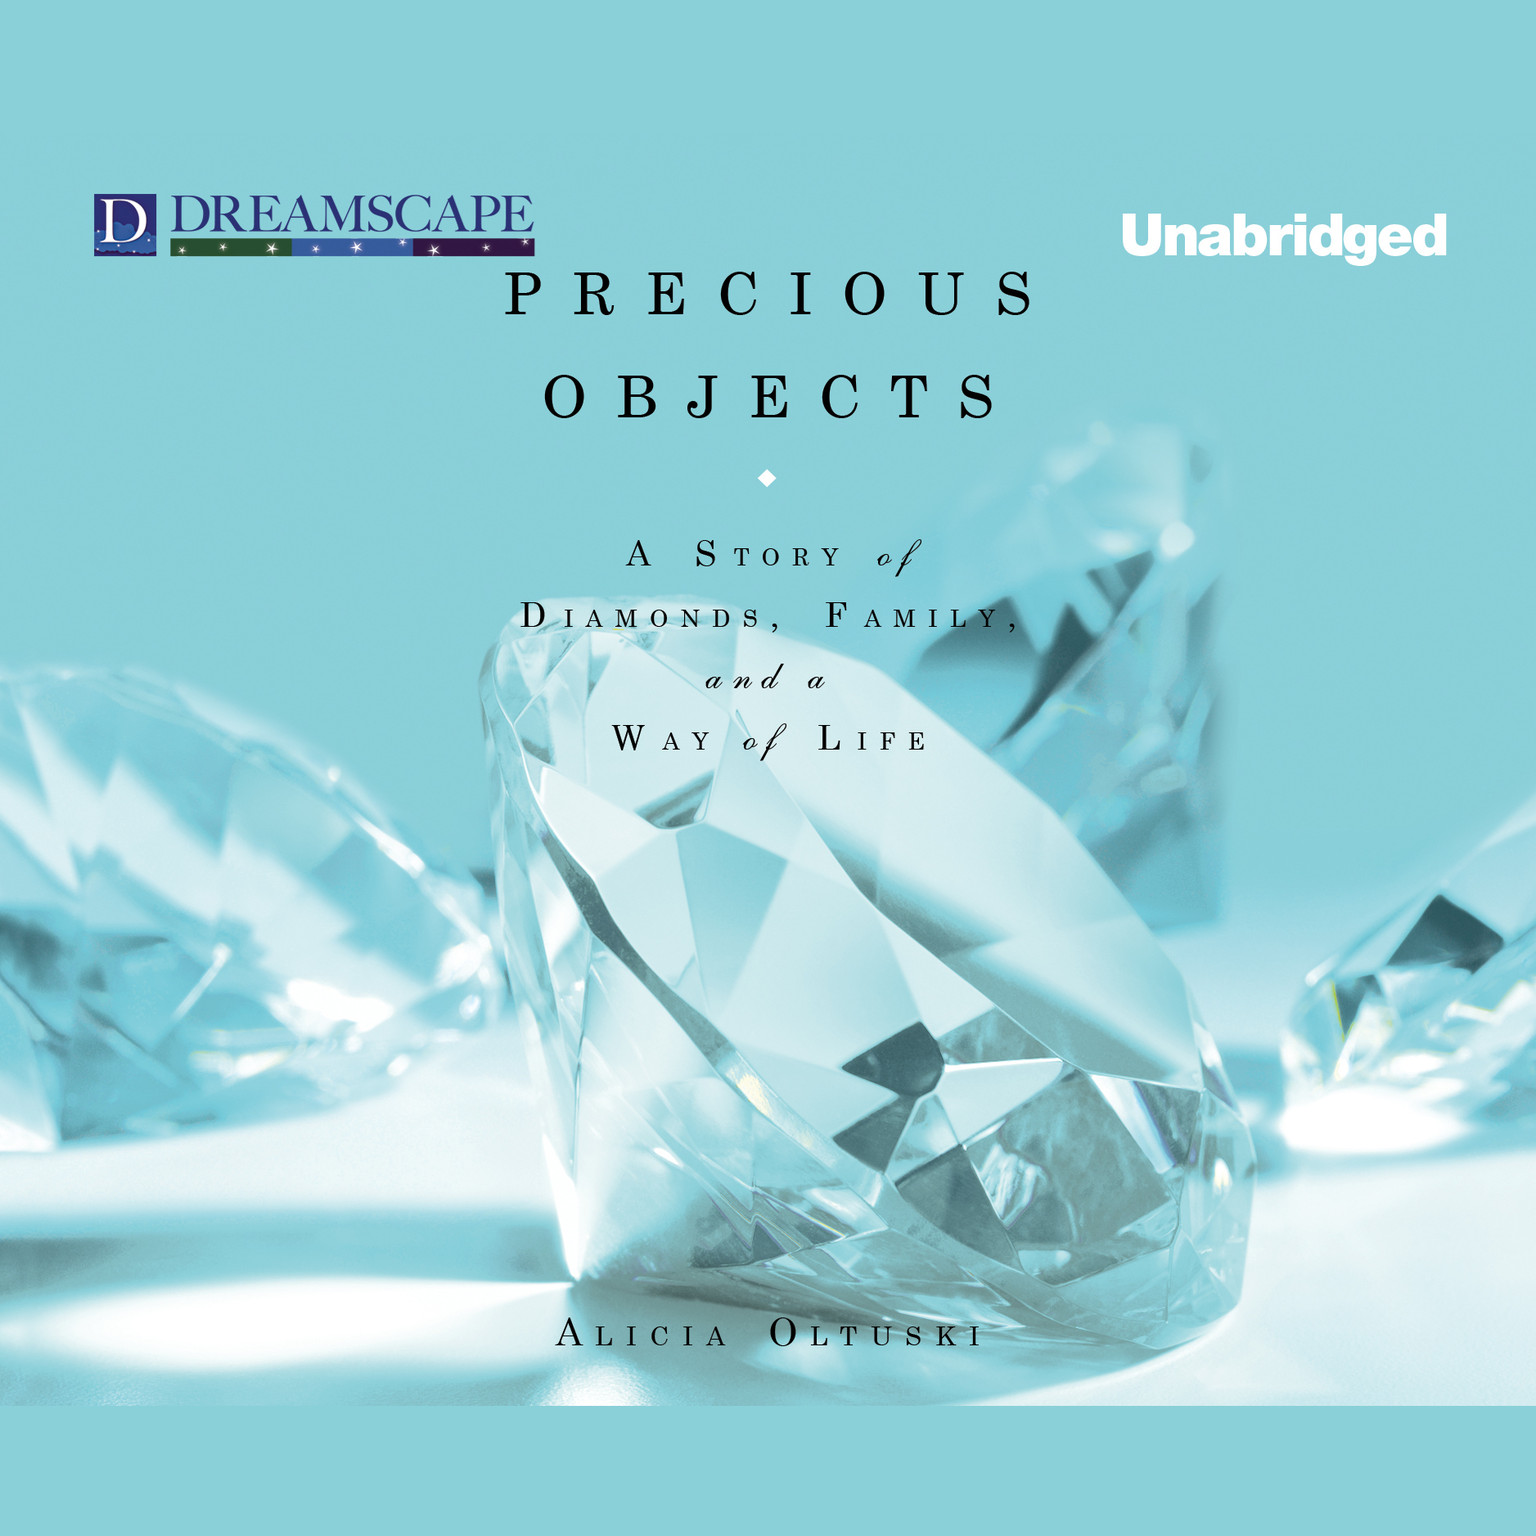 Precious – jewellery, pleasure, way of life